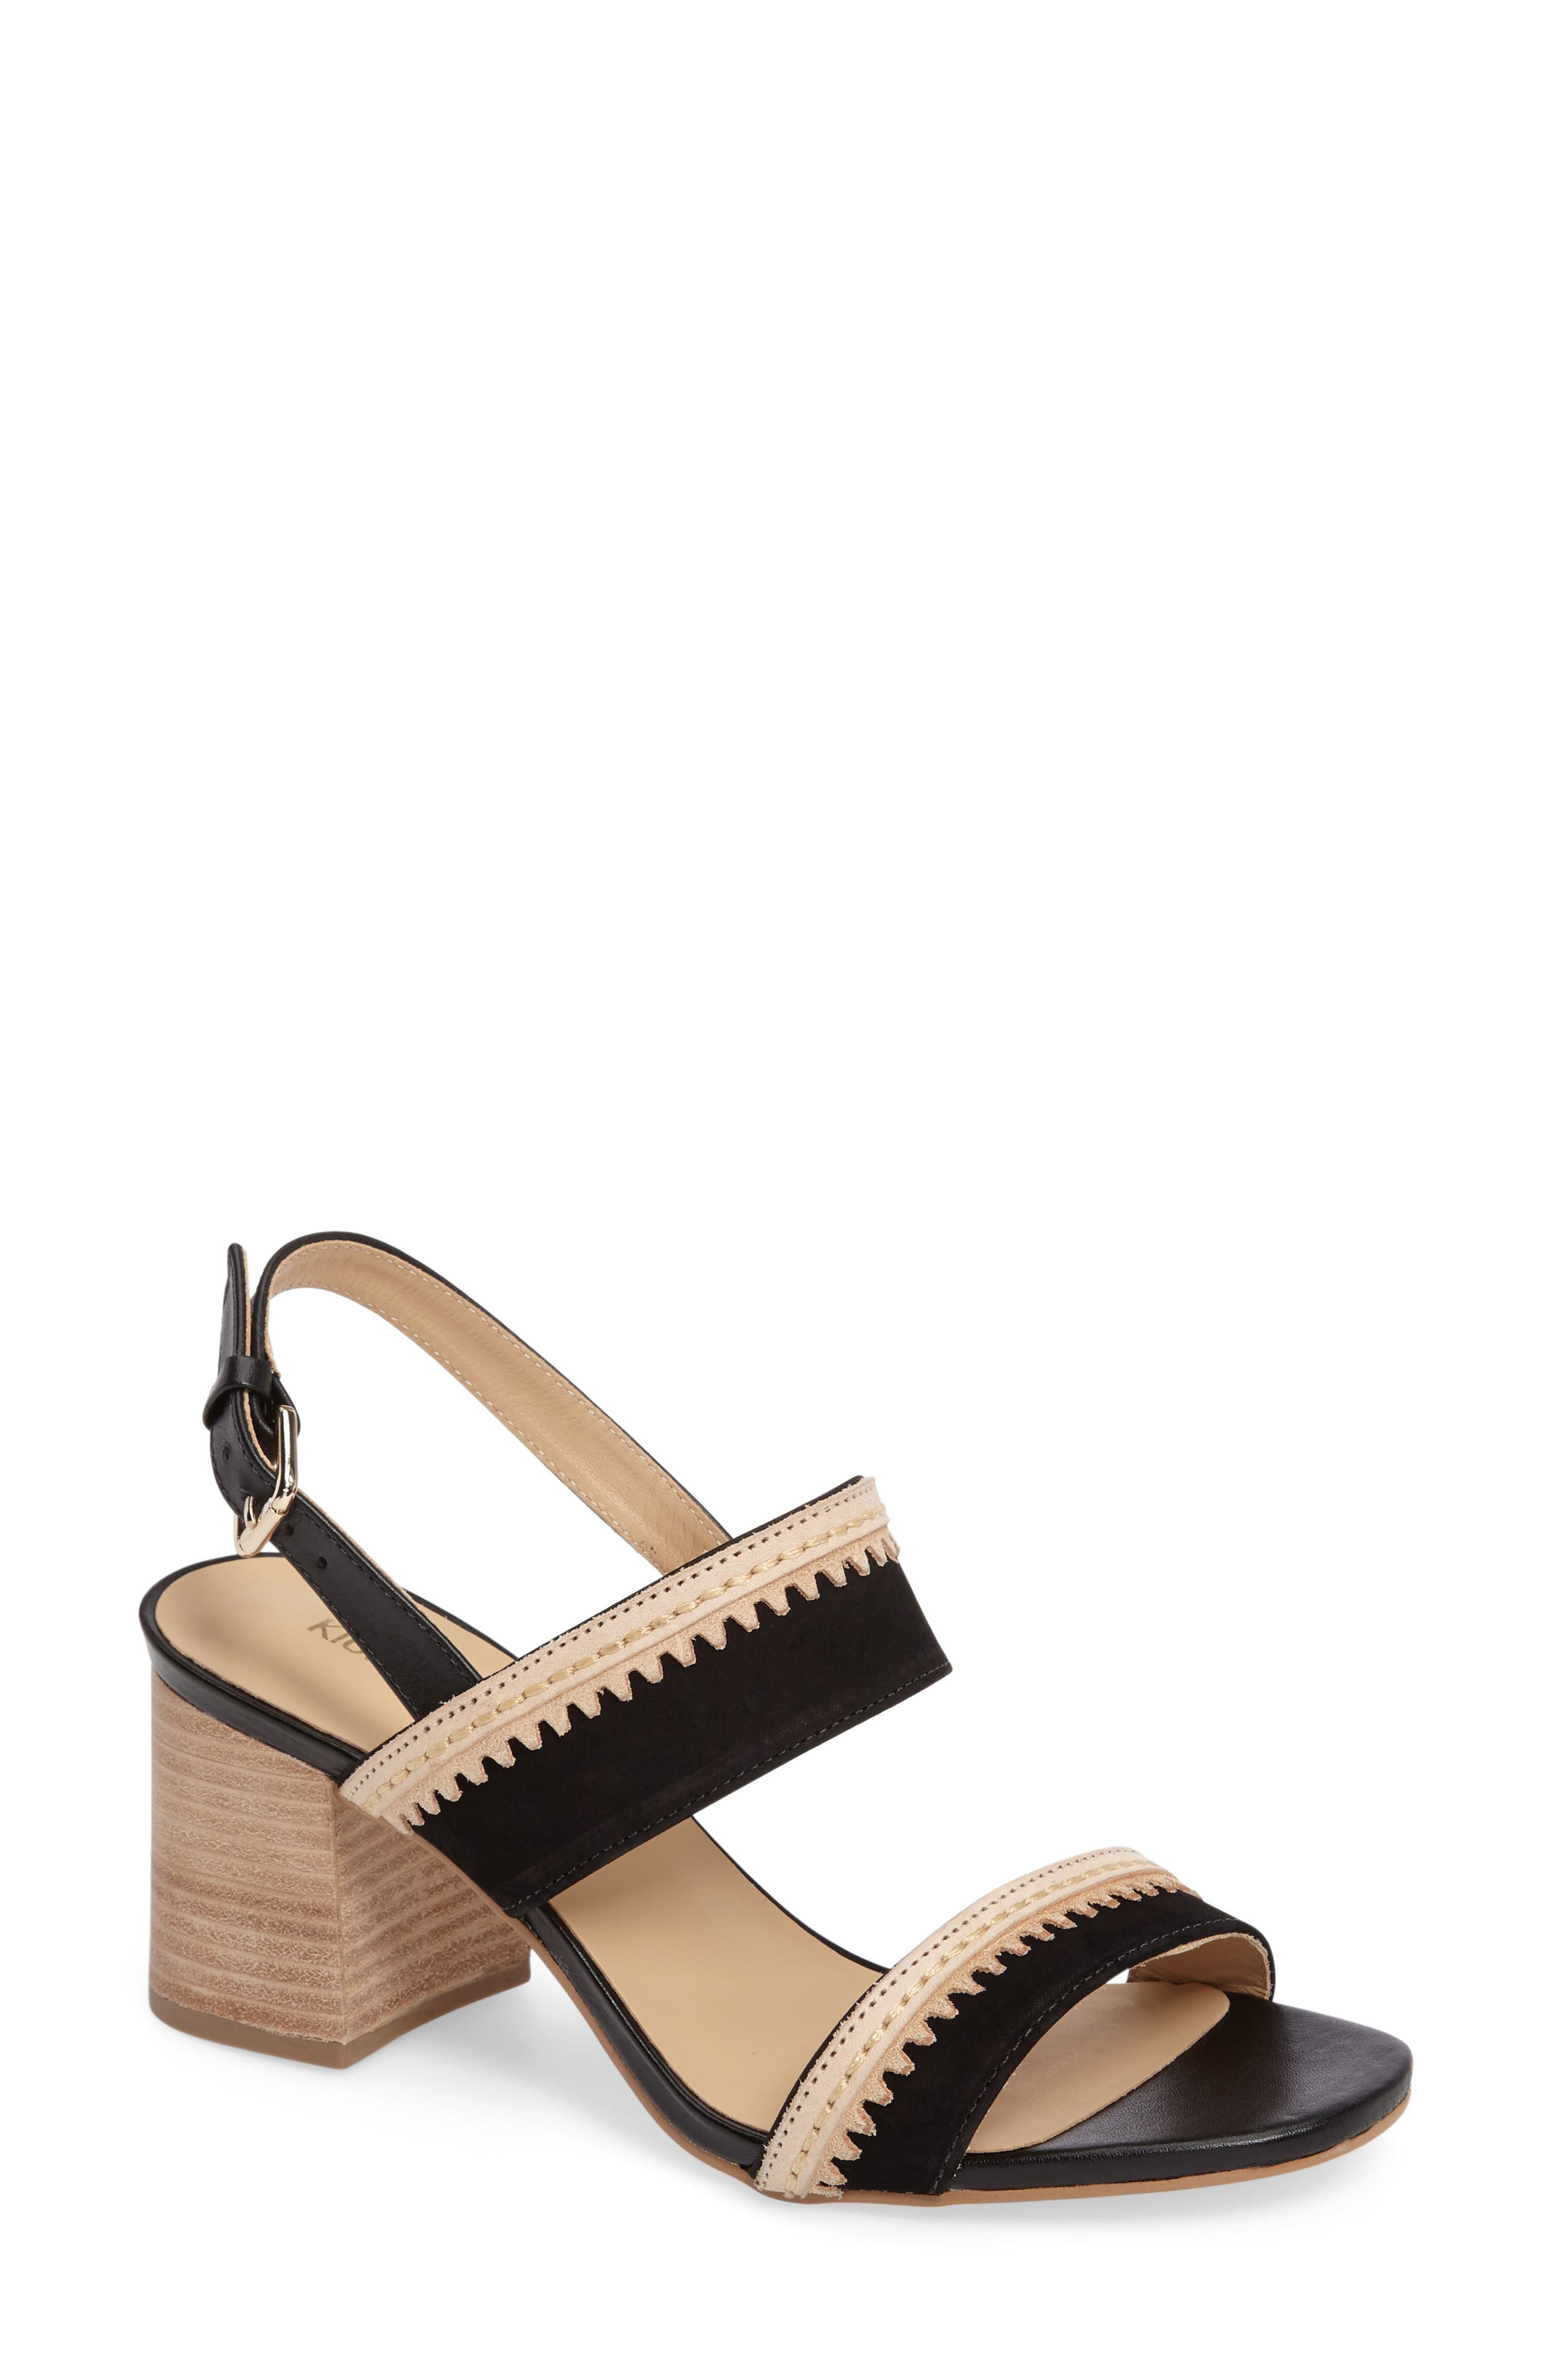 Alternate Image 1 Selected - Klub Nico Rycca Block Heel Sandal (Women)